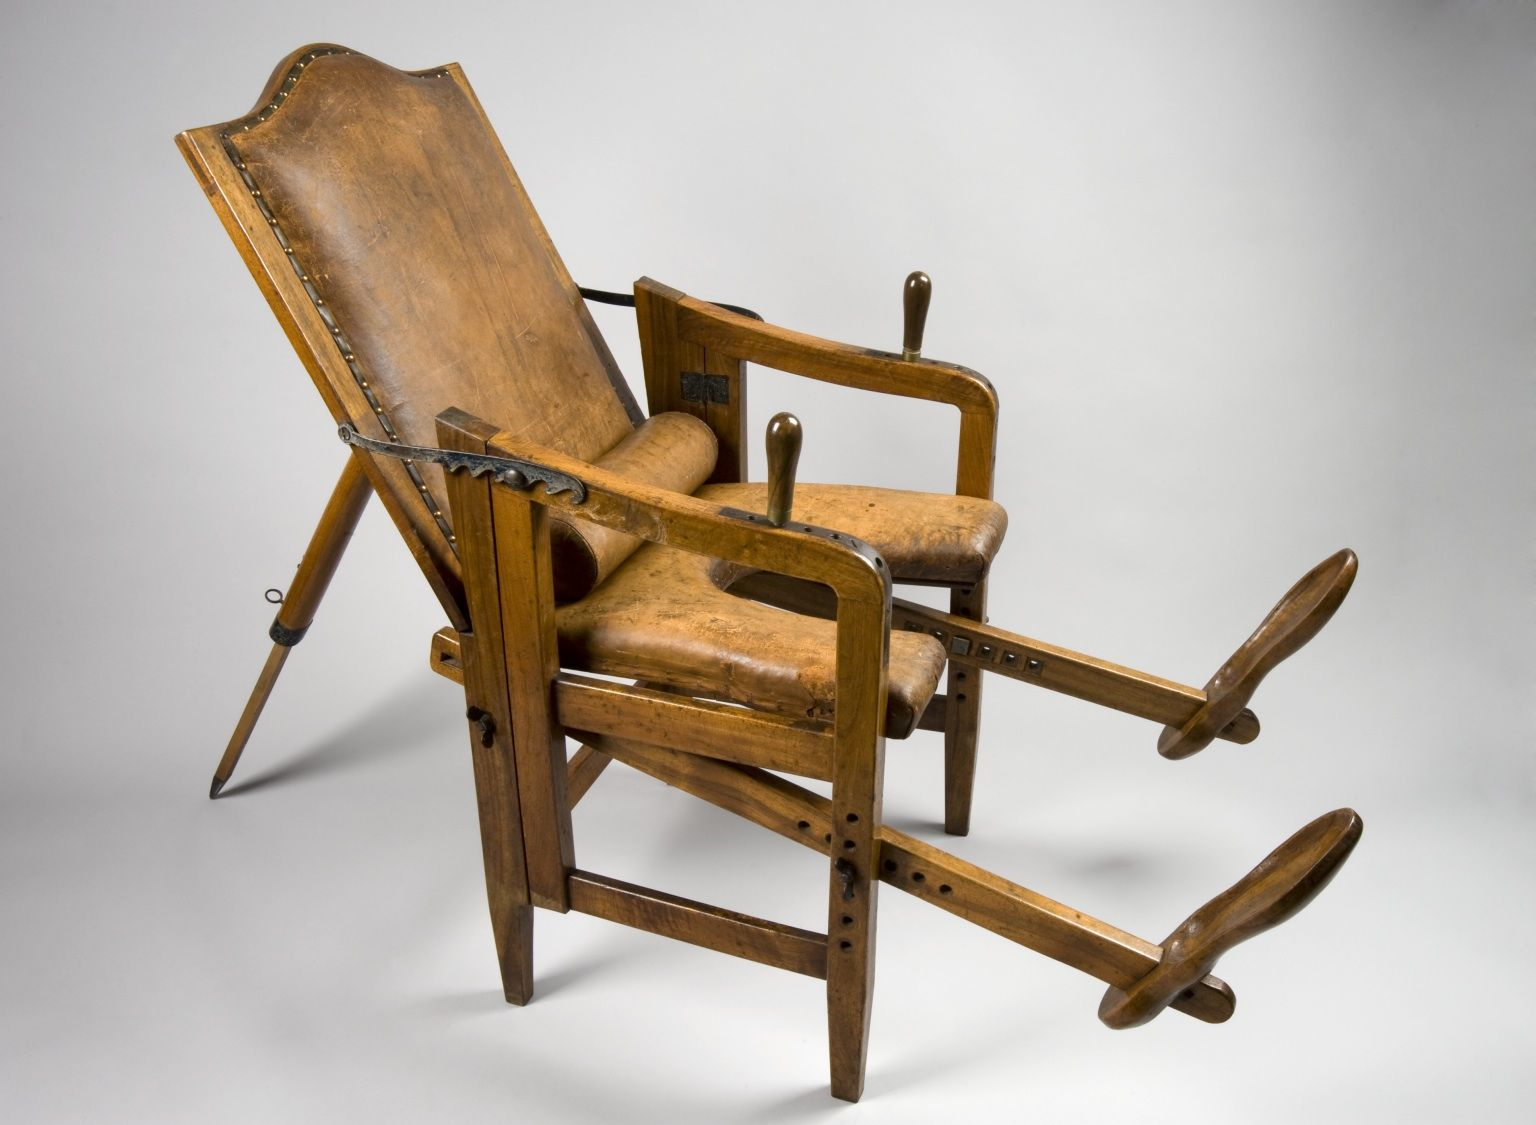 this adjustable chair let 18th century women give birth in. Black Bedroom Furniture Sets. Home Design Ideas